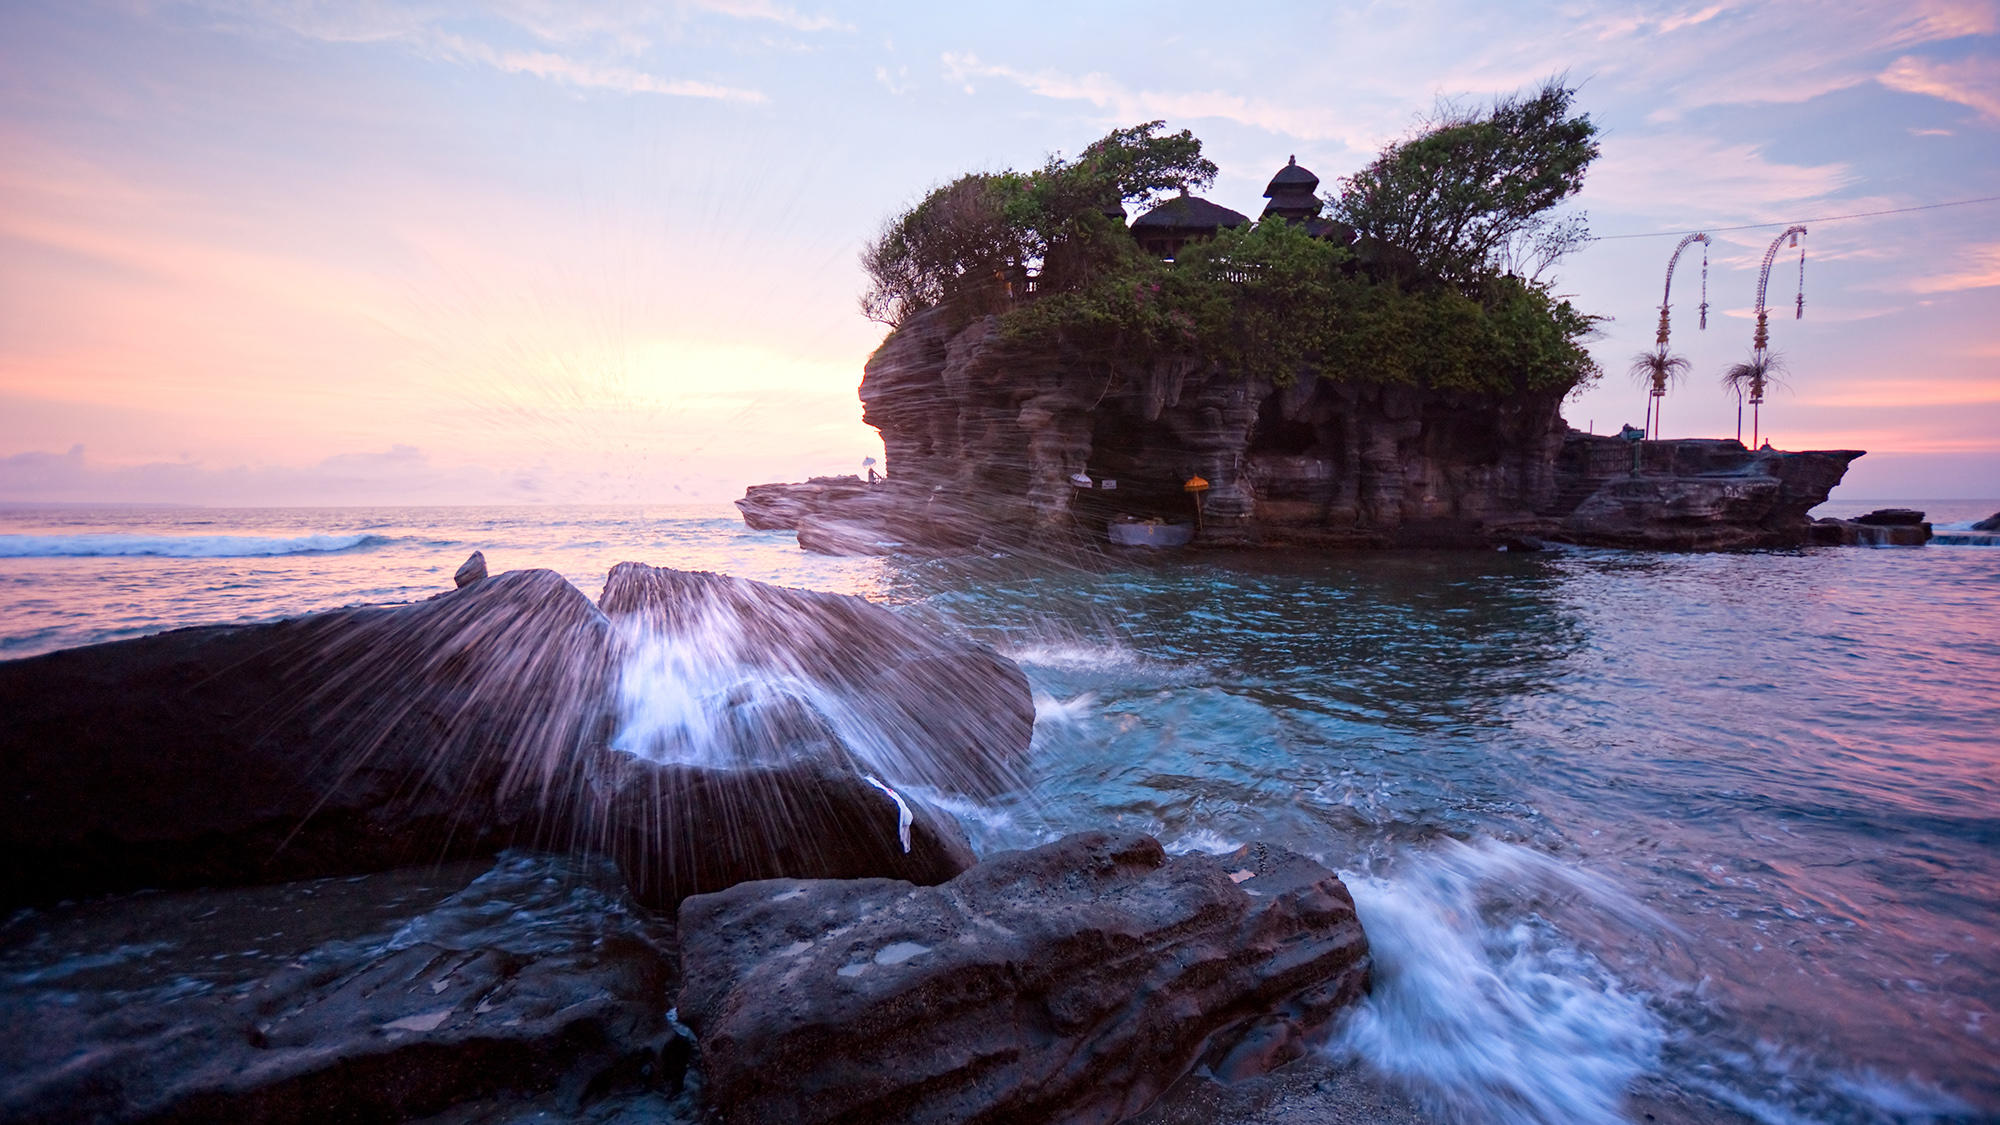 Bali island and sea